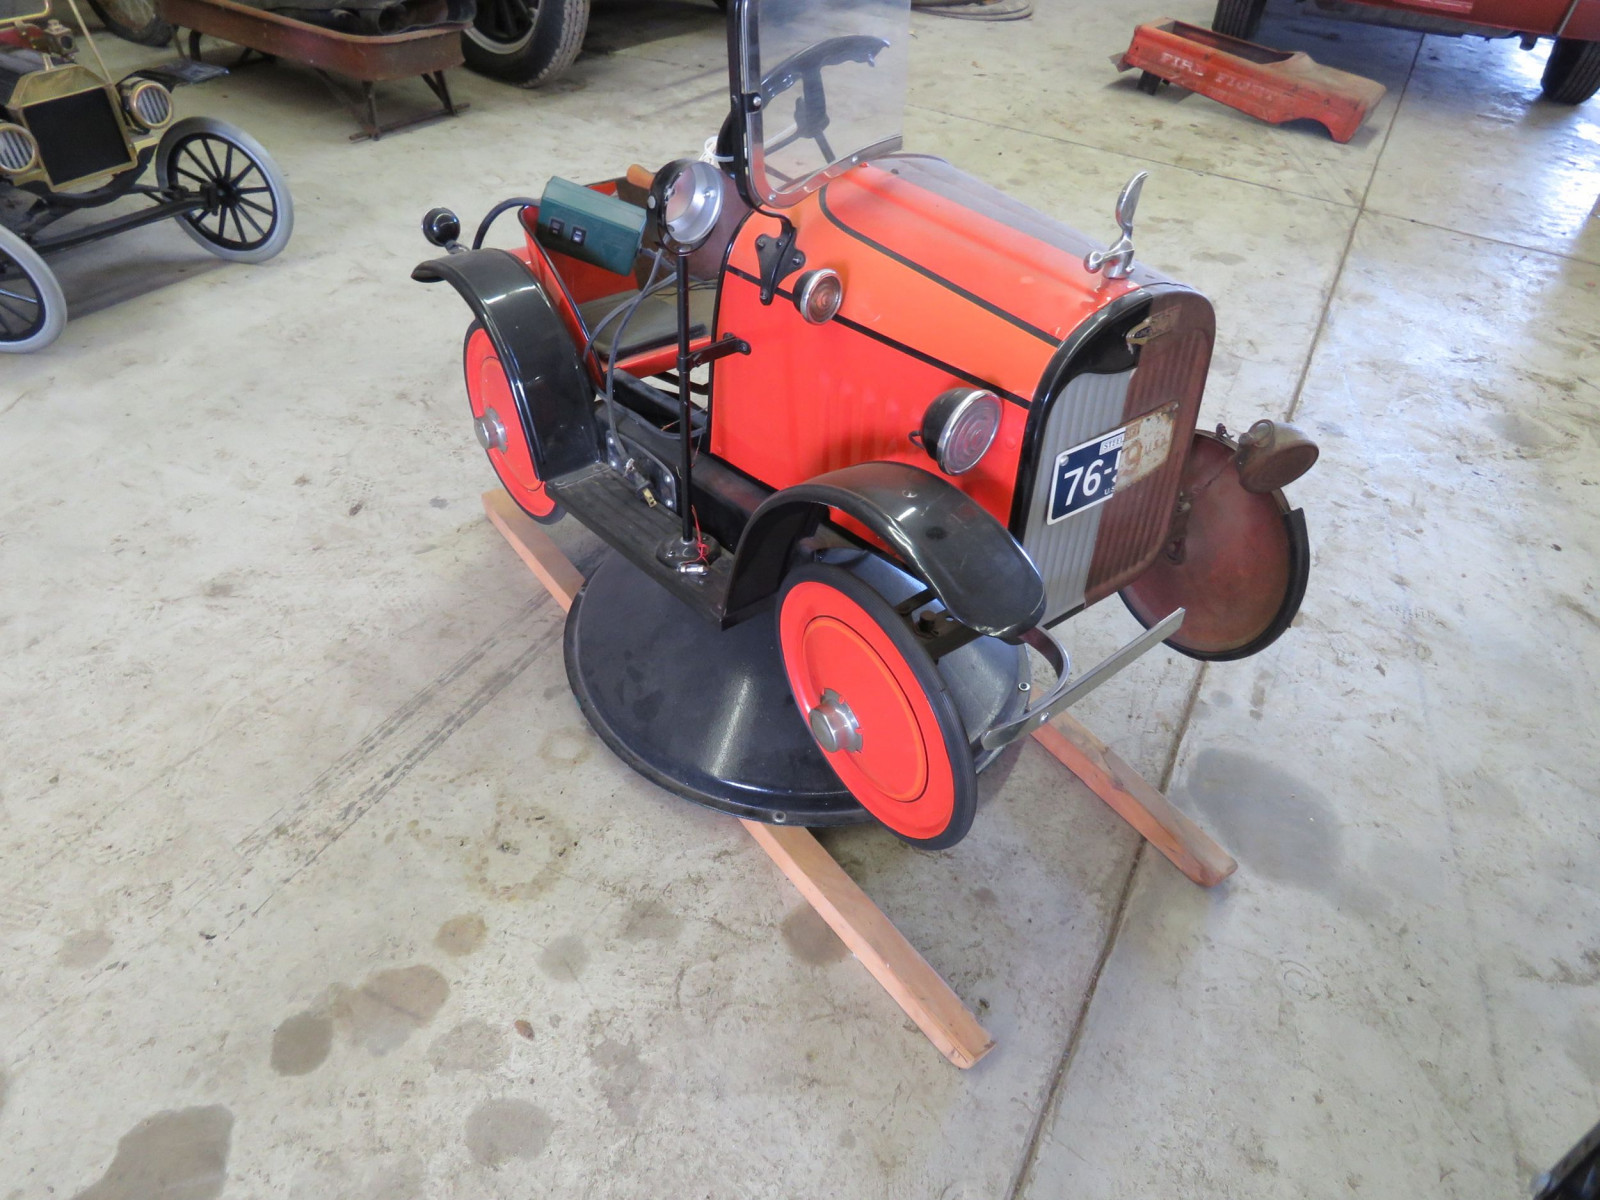 Vintage Steel Craft Pedal Car - Image 1